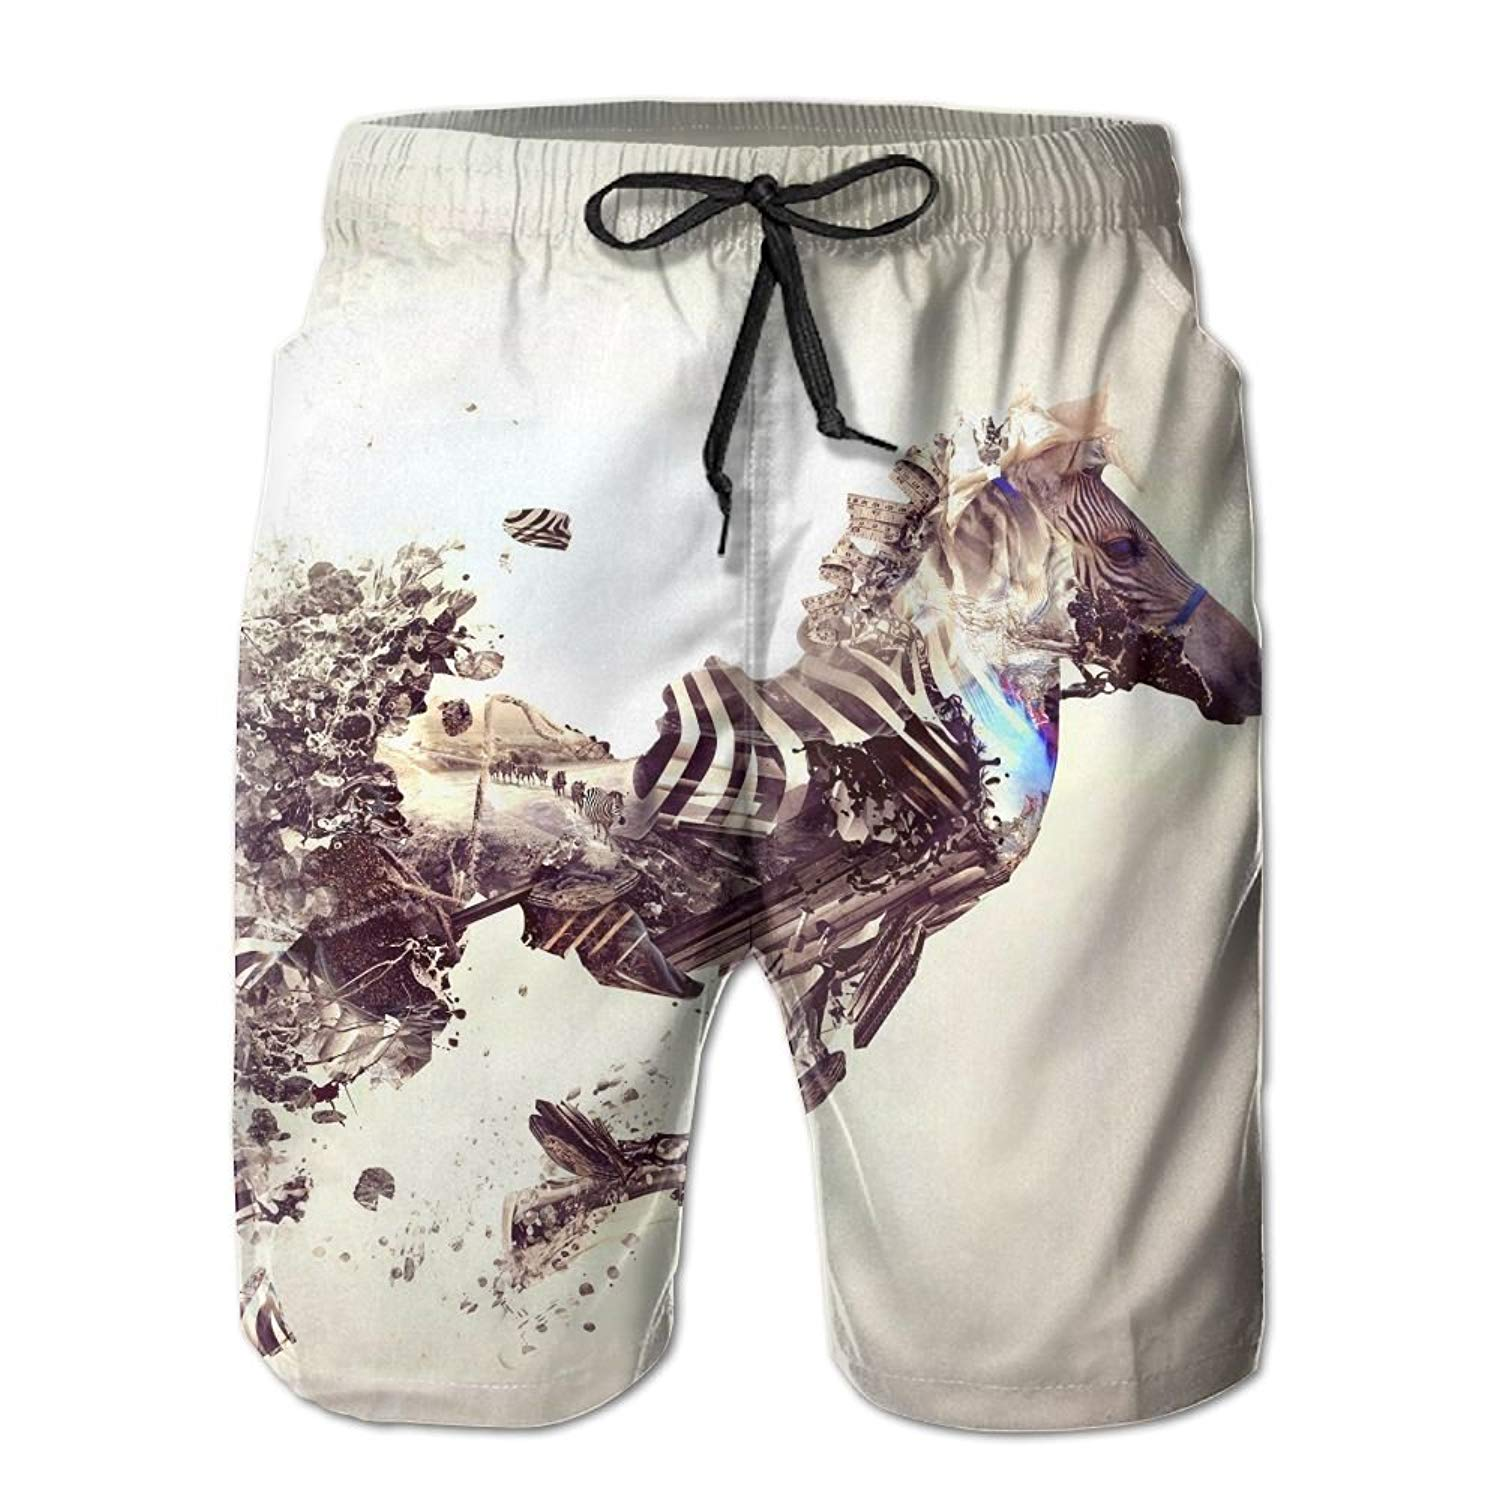 Beachsite Artistic Bonsai Explosion Japan Zebra Men's/Boys Casual Quick-Drying Bath Suits Elastic Waist Beach Pants With Pockets